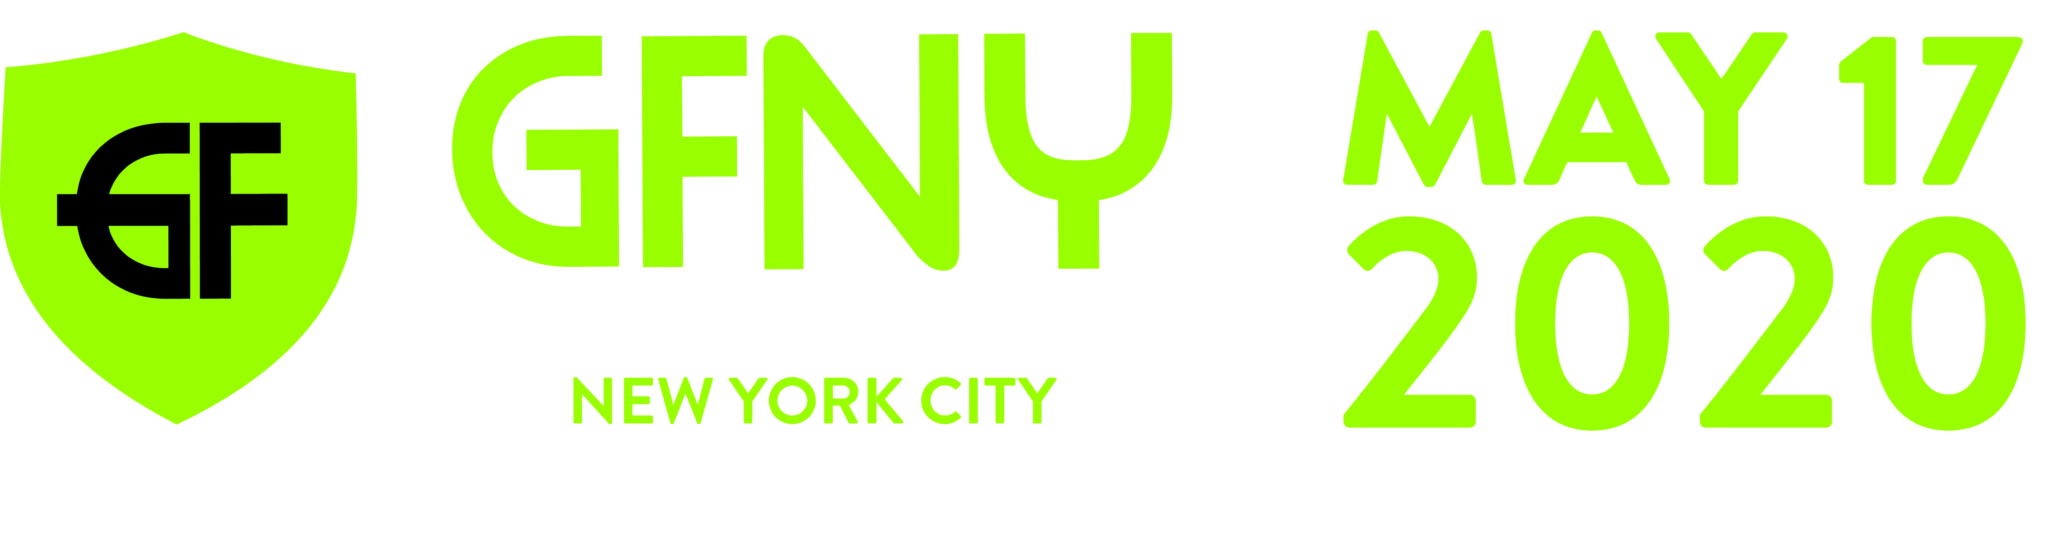 Rules – GFNY World Championship New York City | GFNY Cycling